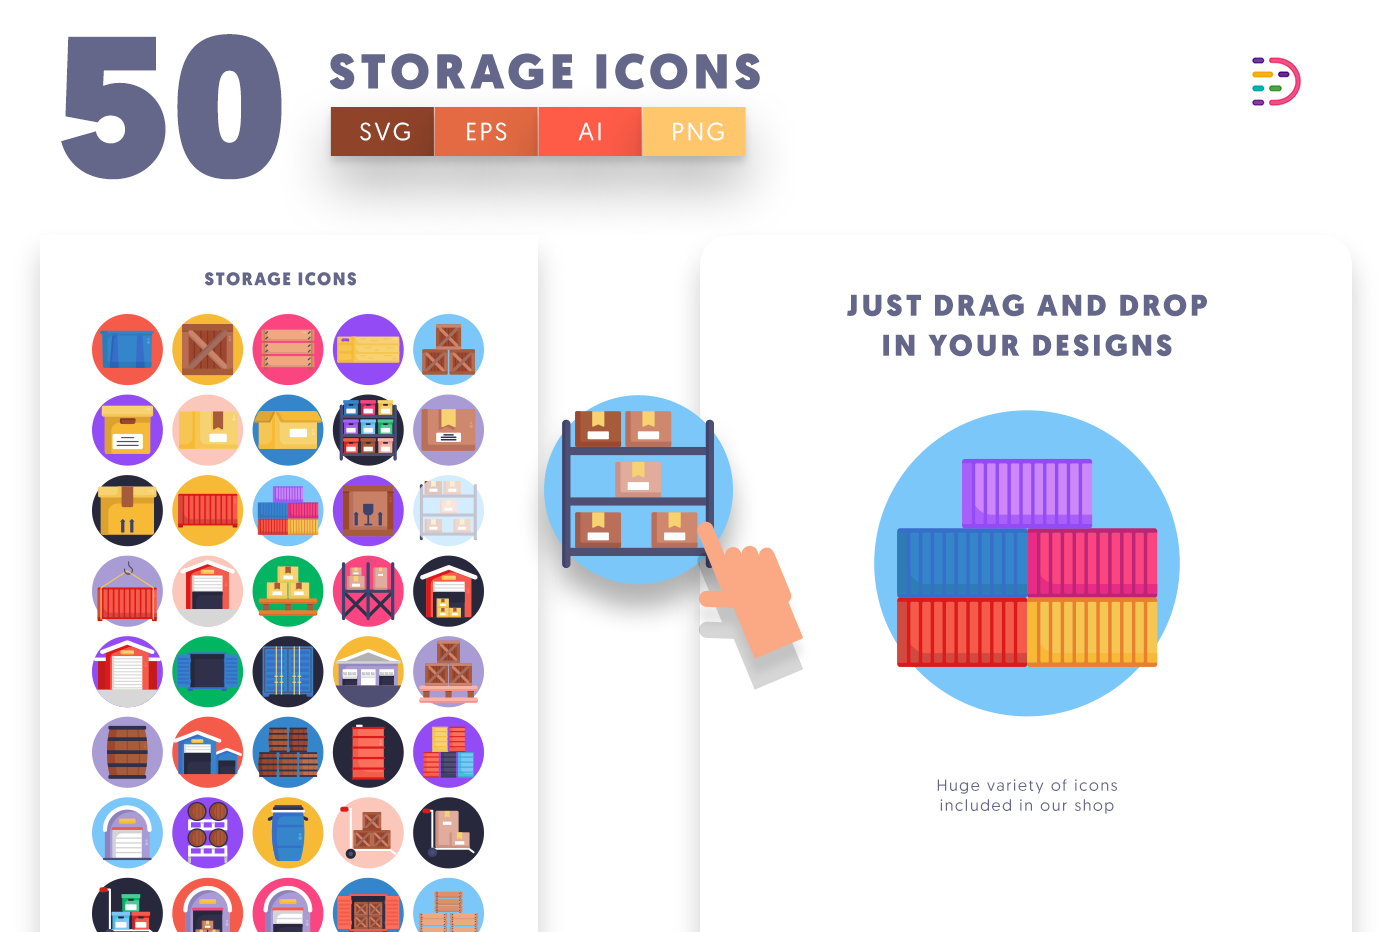 Drag and drop vector 50 Storage Icons